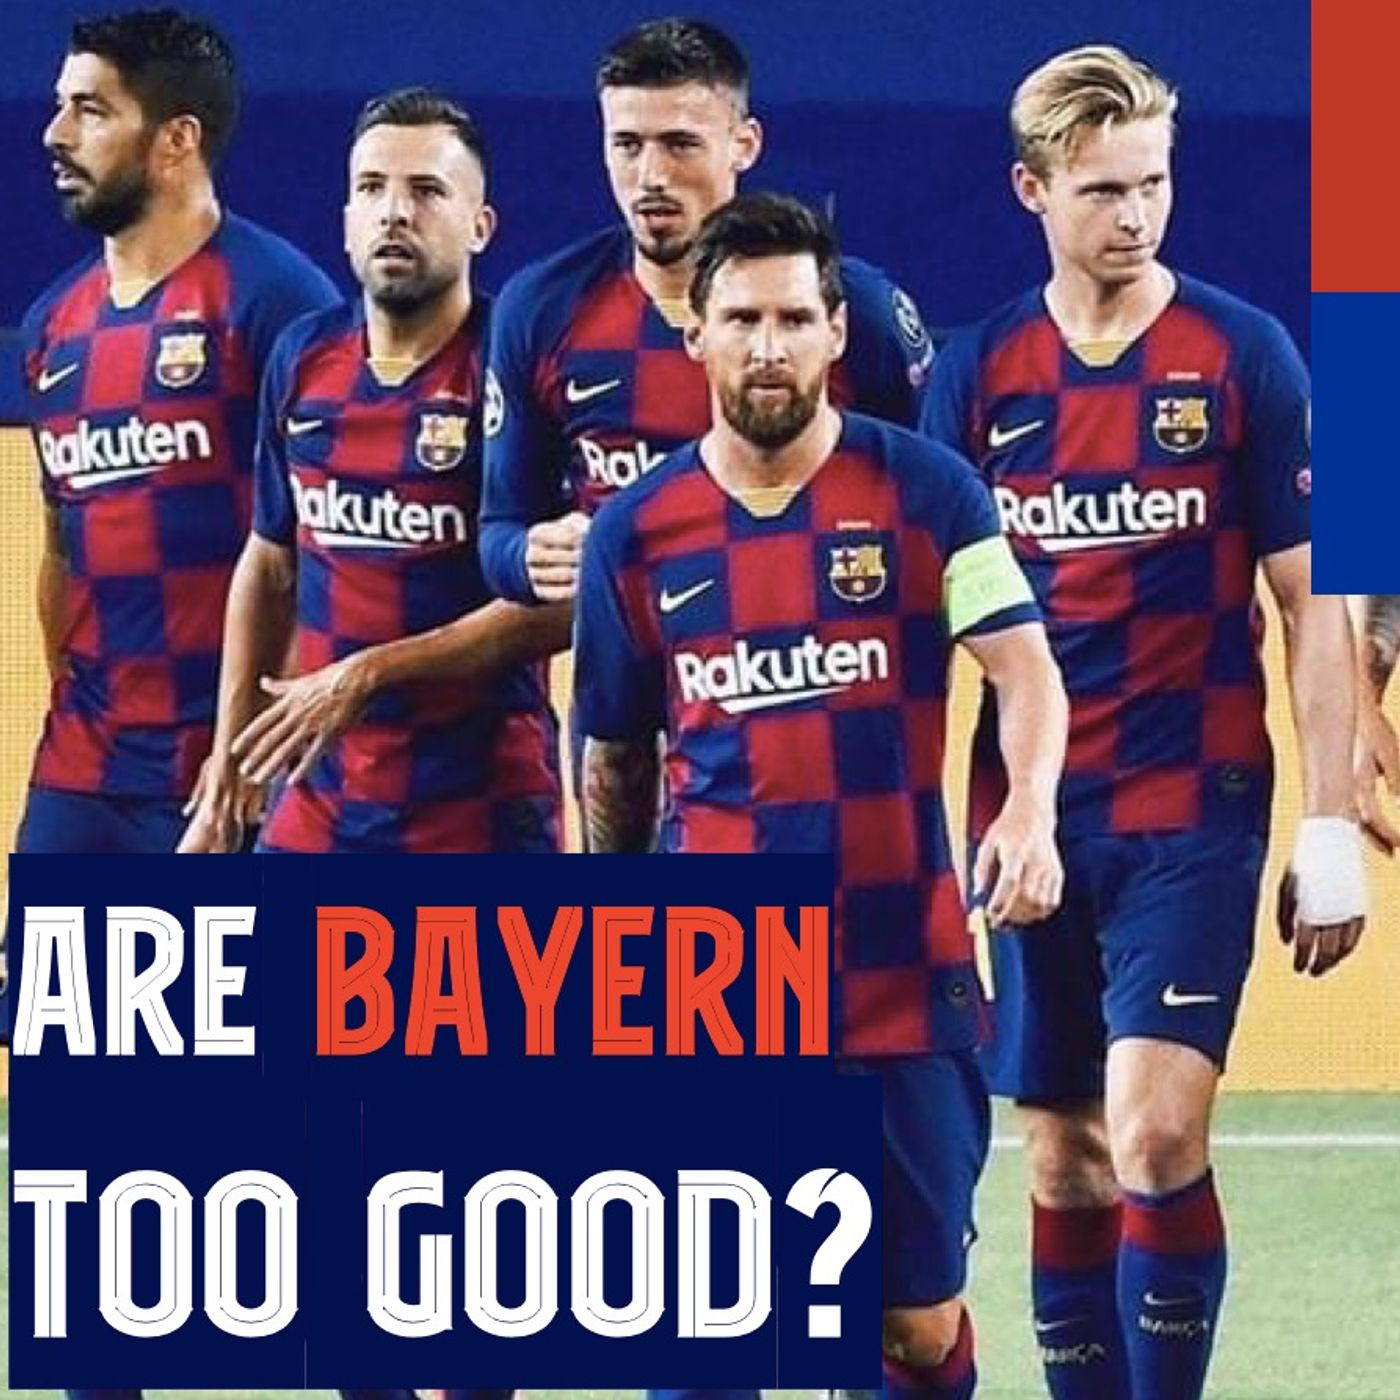 Are Bayern Munich really too good for Barcelona? Champions League chances and squad limitations